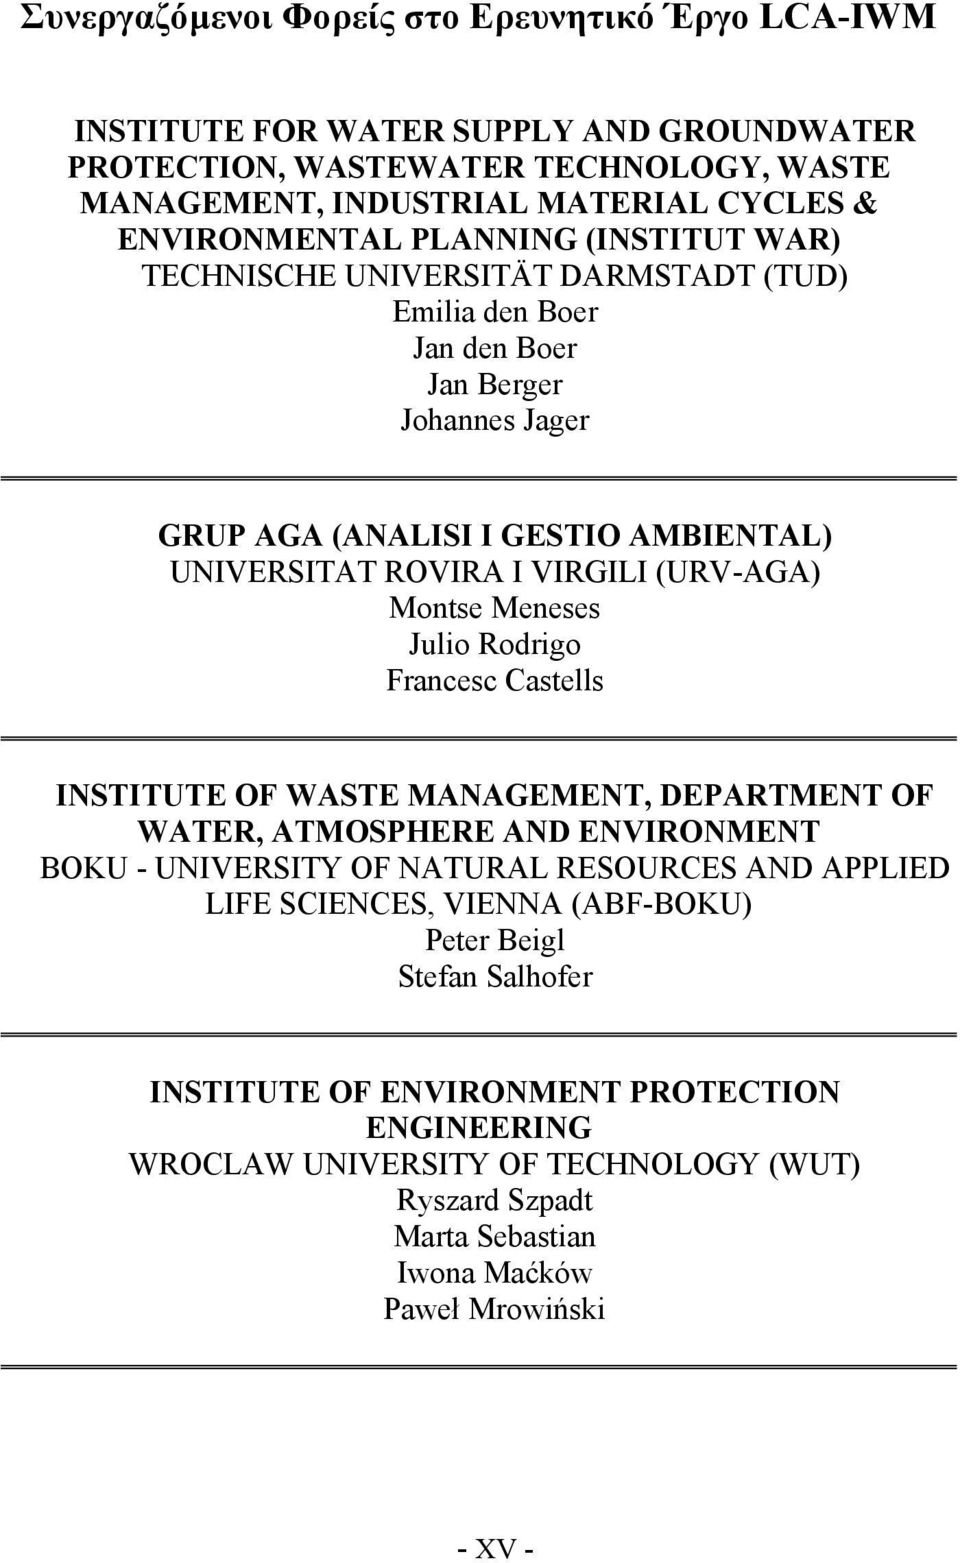 (URV-AGA) Montse Meneses Julio Rodrigo Francesc Castells INSTITUTE OF WASTE MANAGEMENT, DEPARTMENT OF WATER, ATMOSPHERE AND ENVIRONMENT BOKU - UNIVERSITY OF NATURAL RESOURCES AND APPLIED LIFE